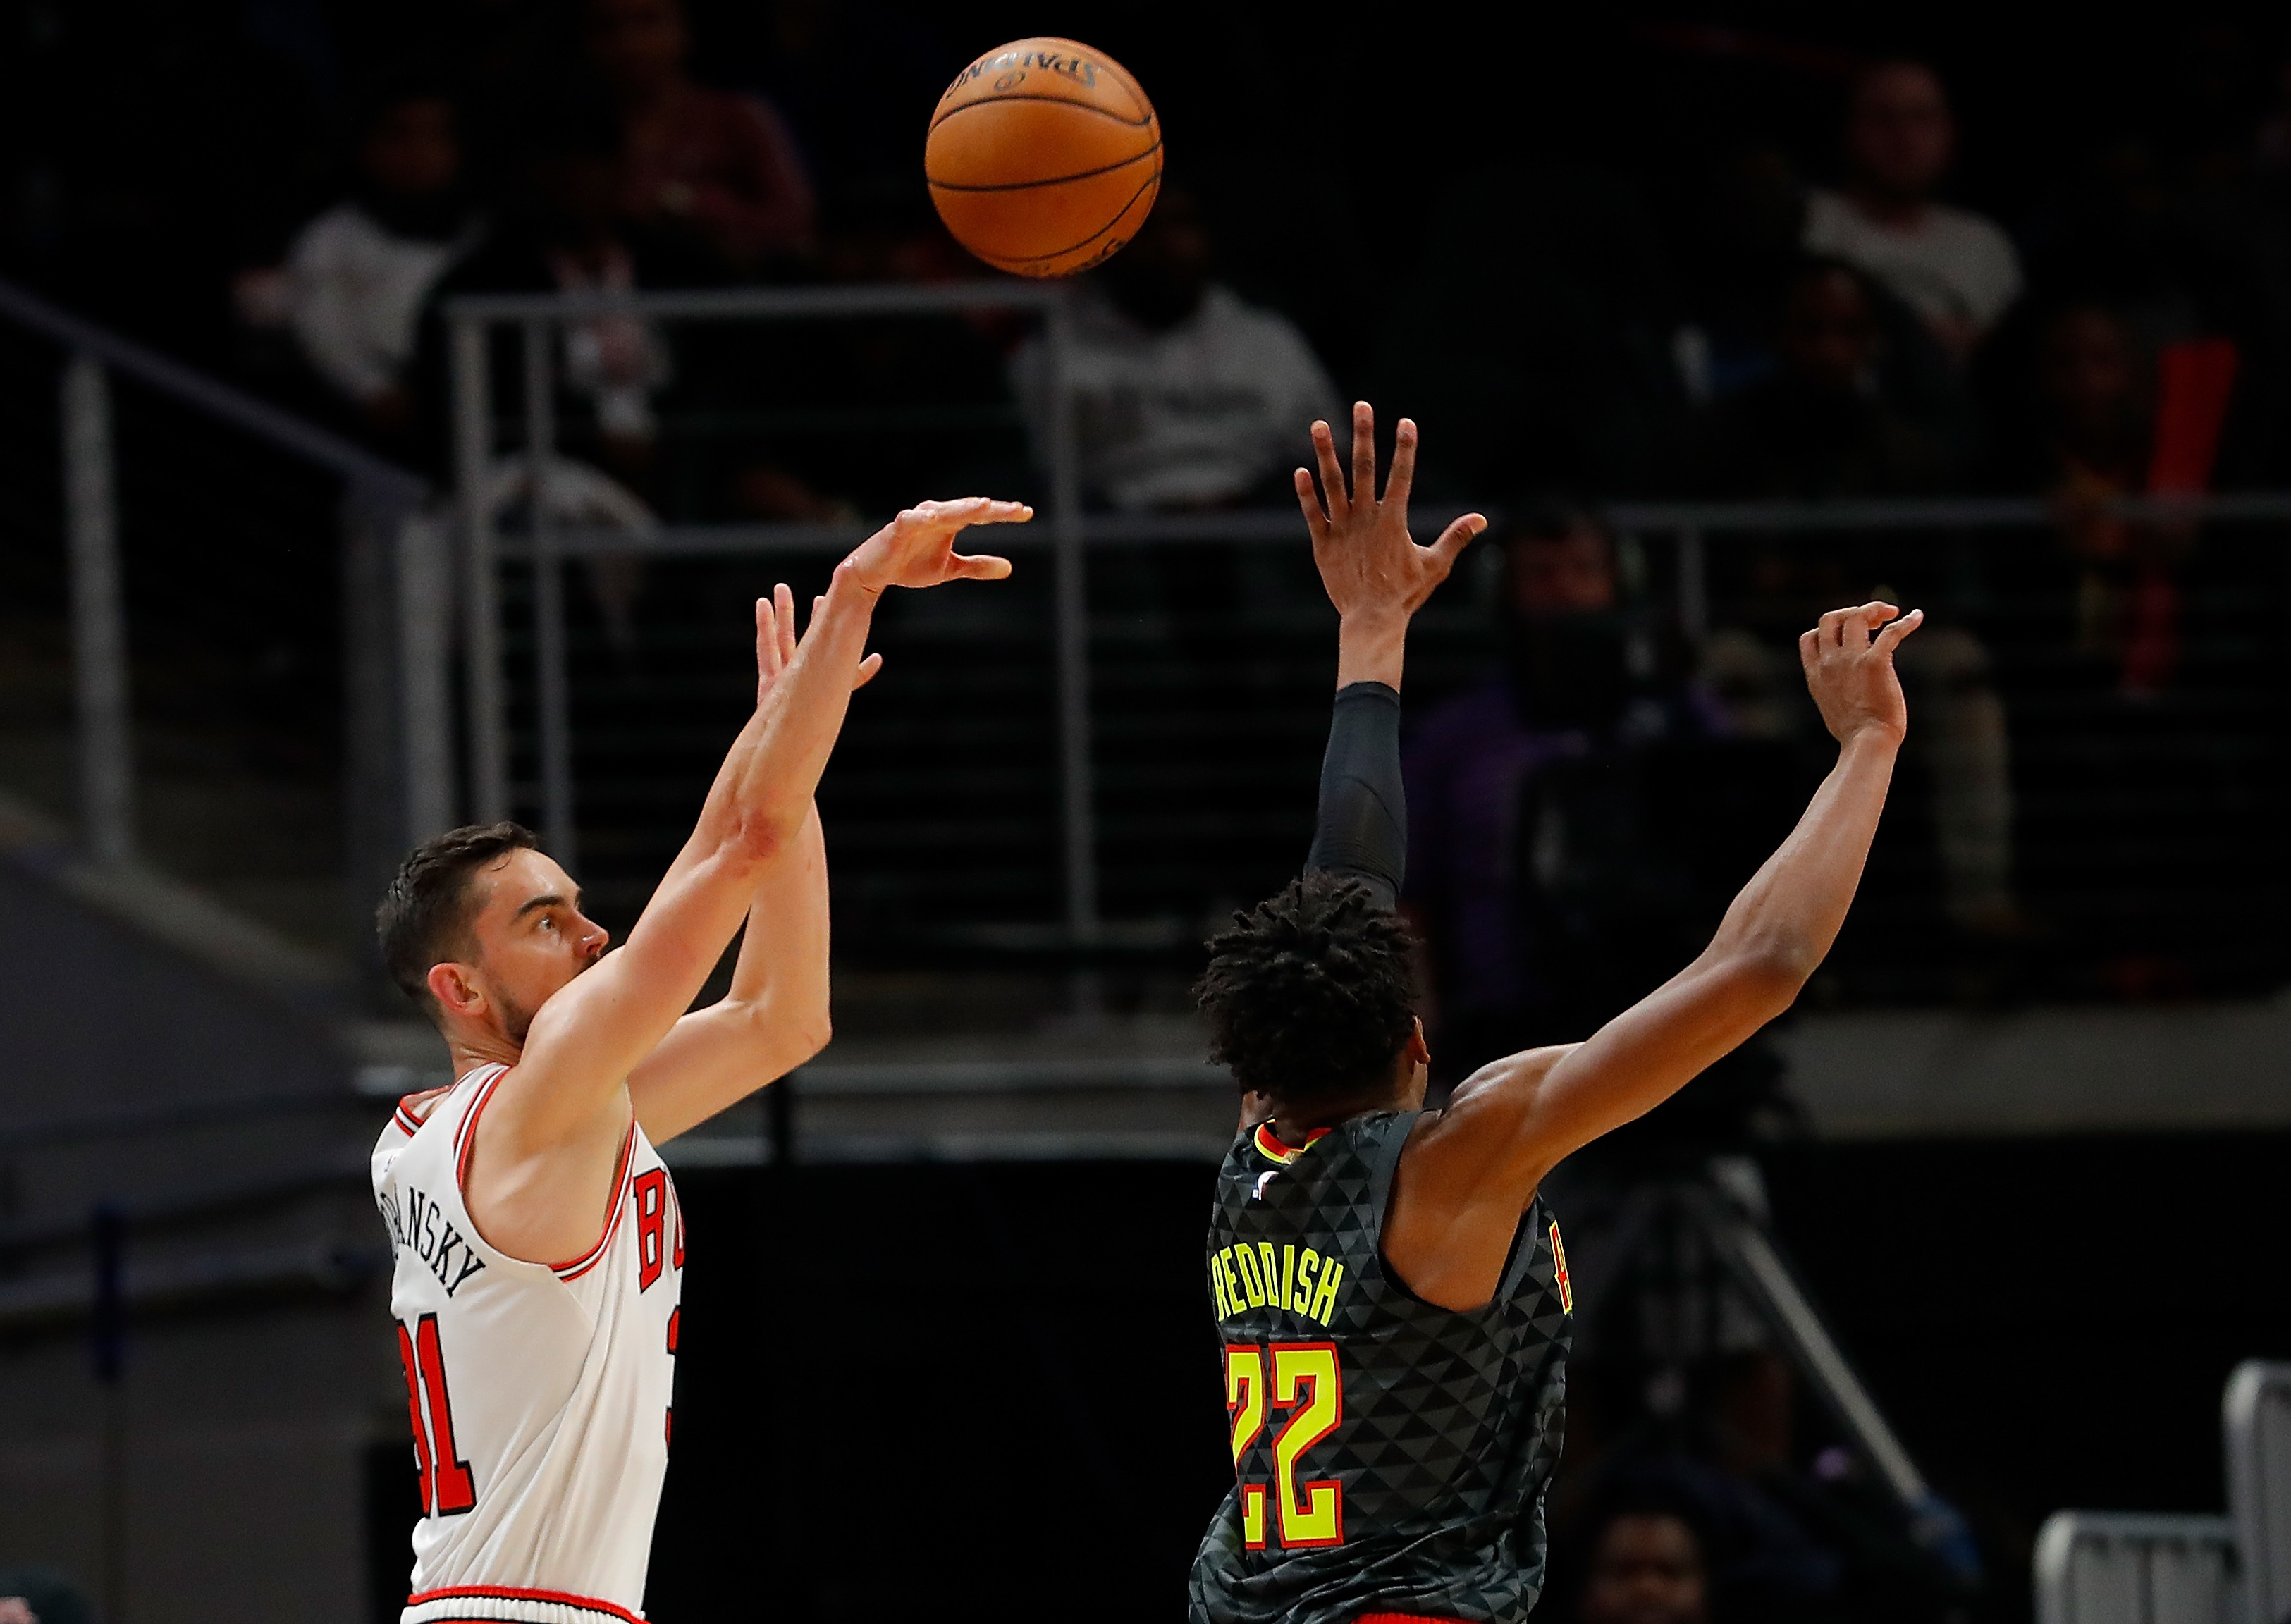 The Bulls' Tomas Satoransky shoots a three-point basket over Cam Reddish of the Hawks as time expires at the end of the first half on Wednesday.